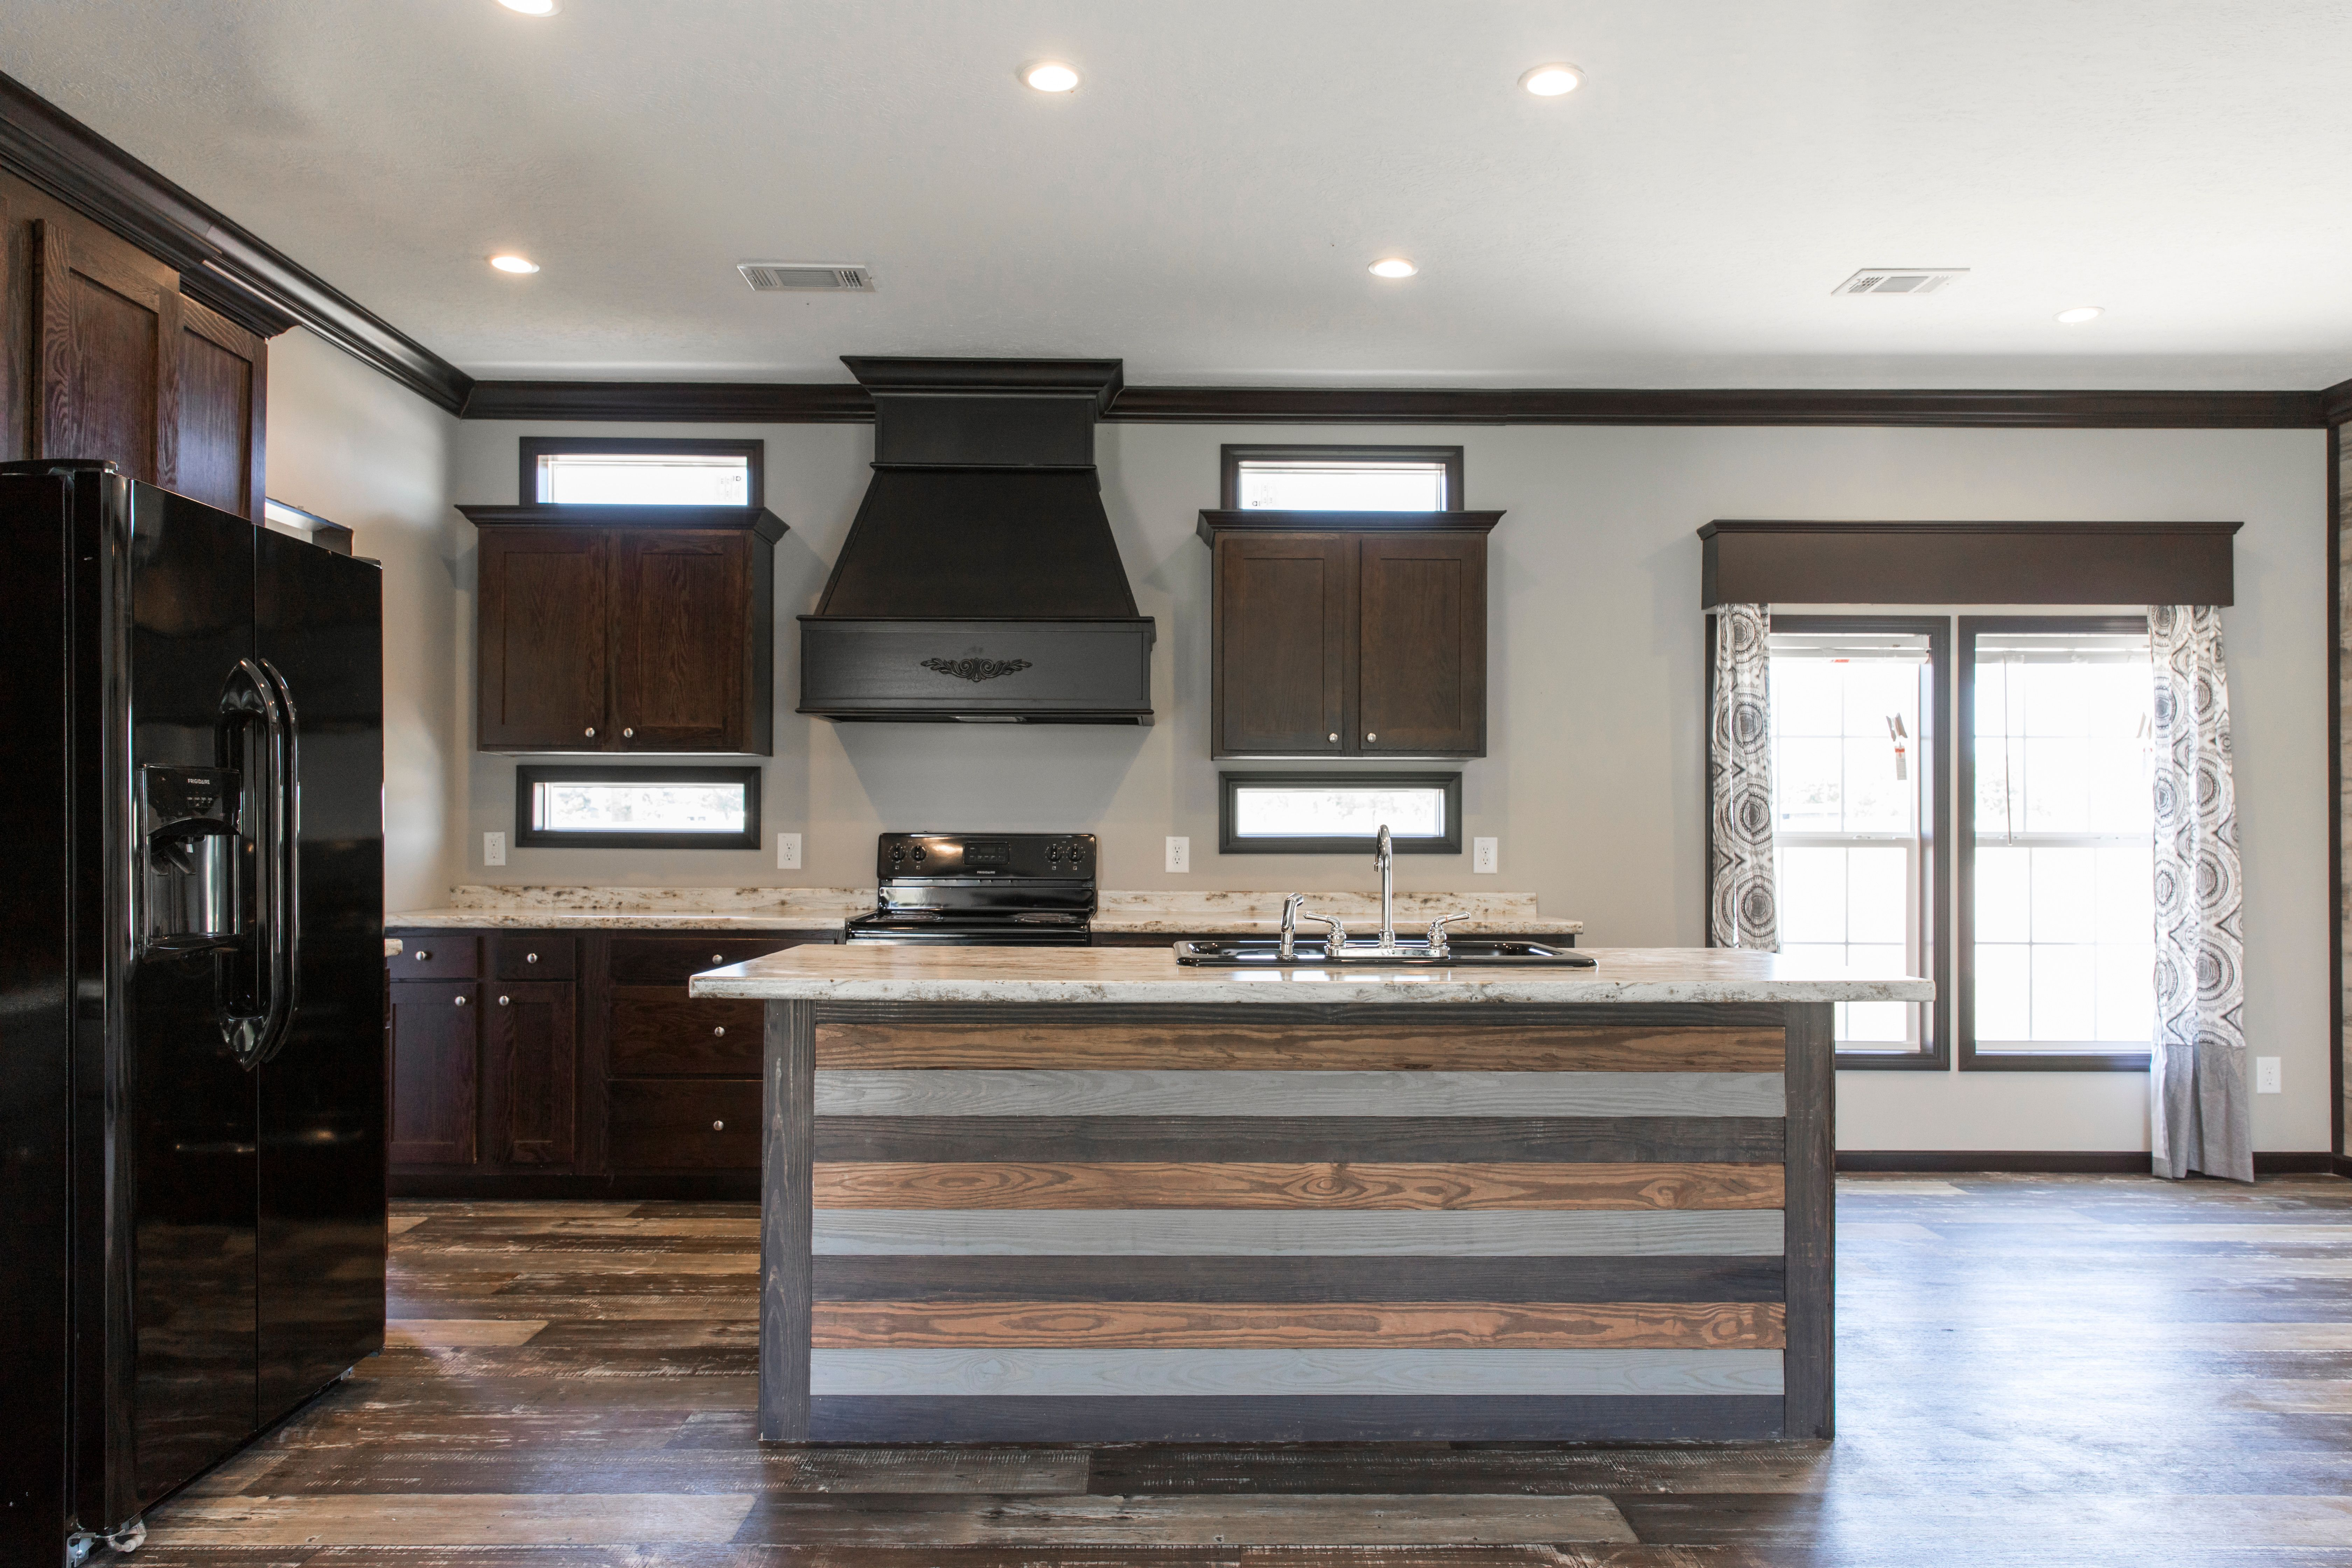 Farmhouse mobile home kitchen with shiplap island   Manufactured ...